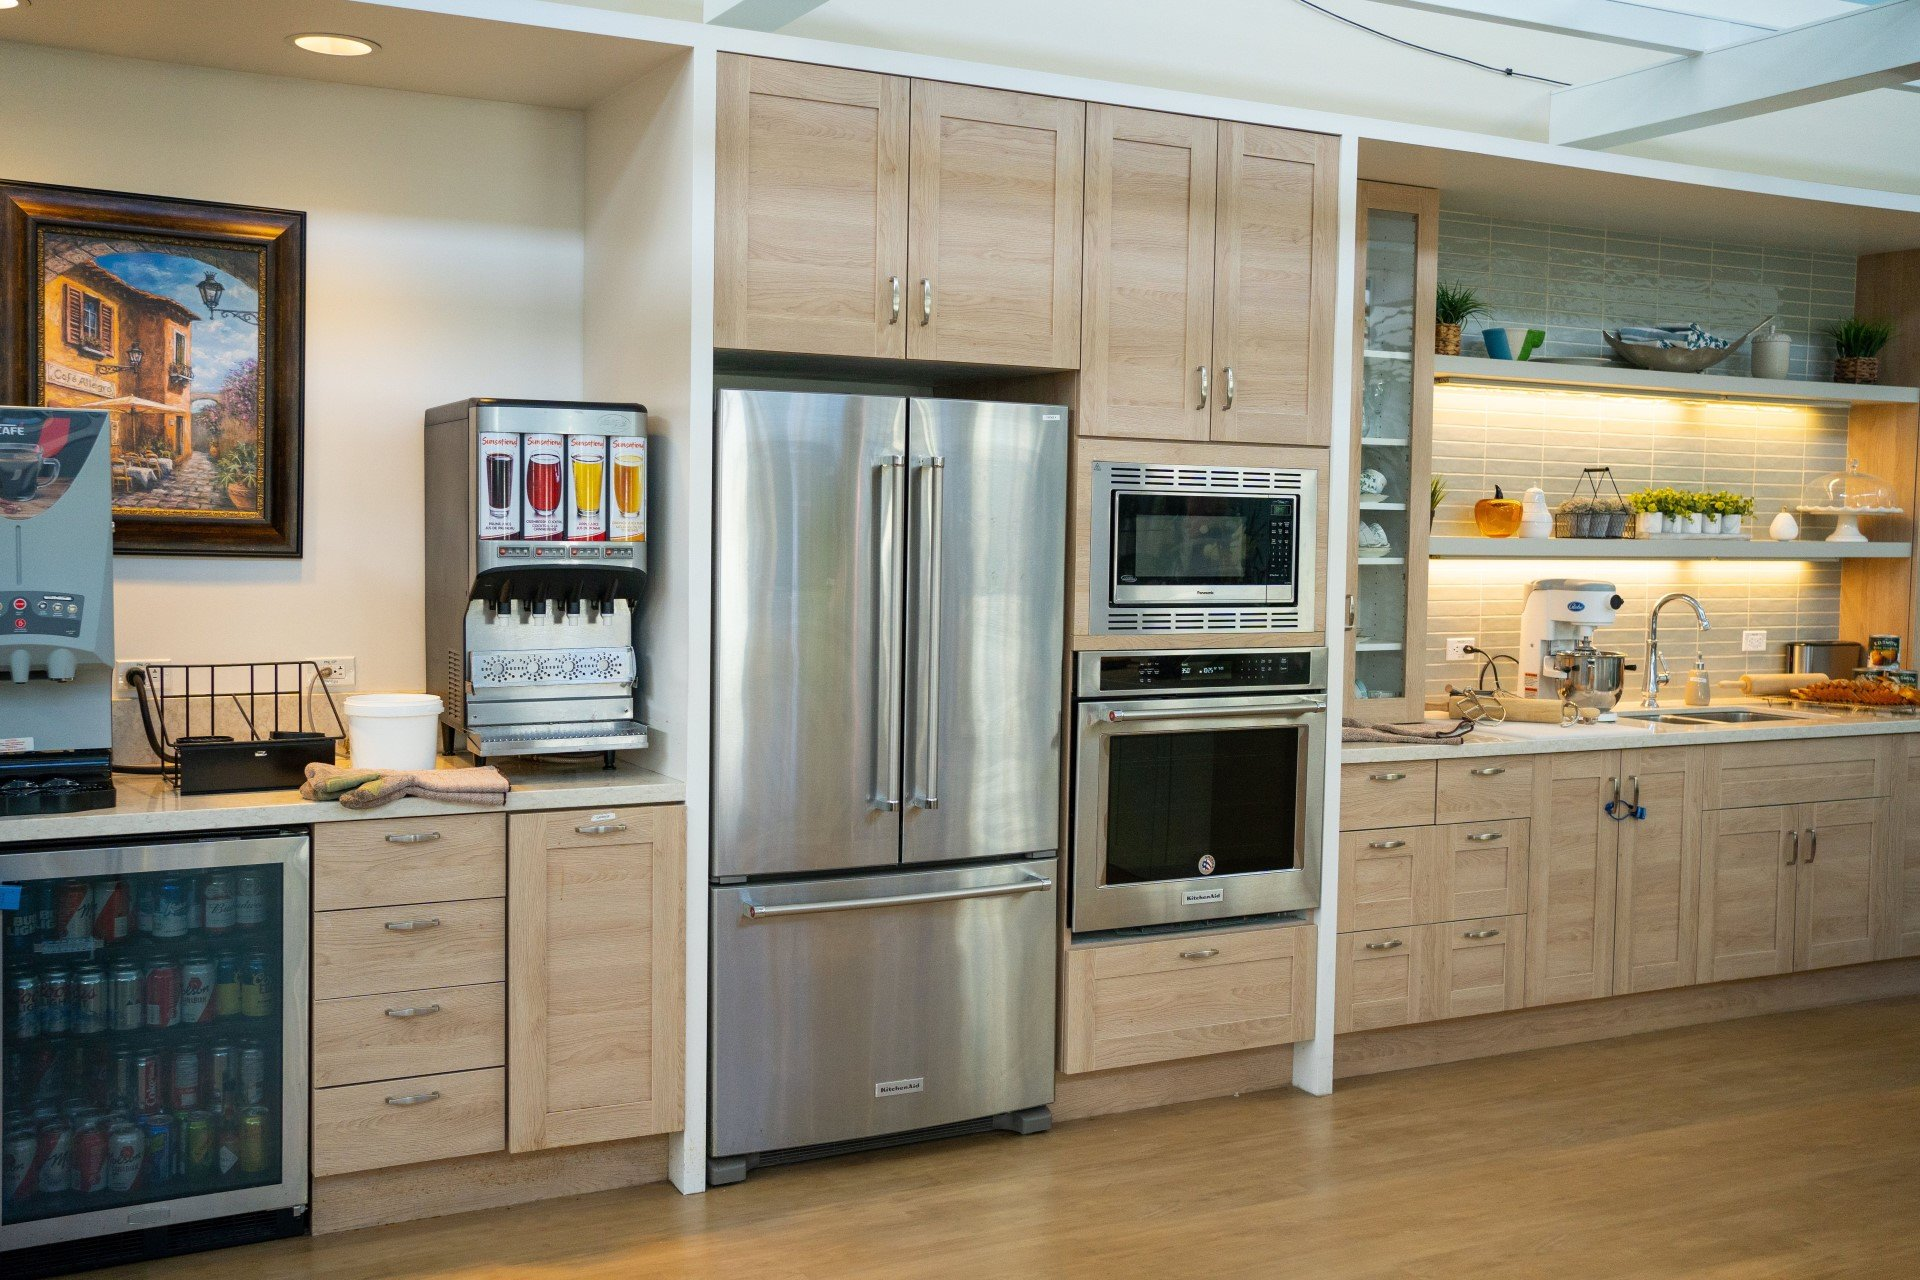 Spruce community features a new demonstration kitchen